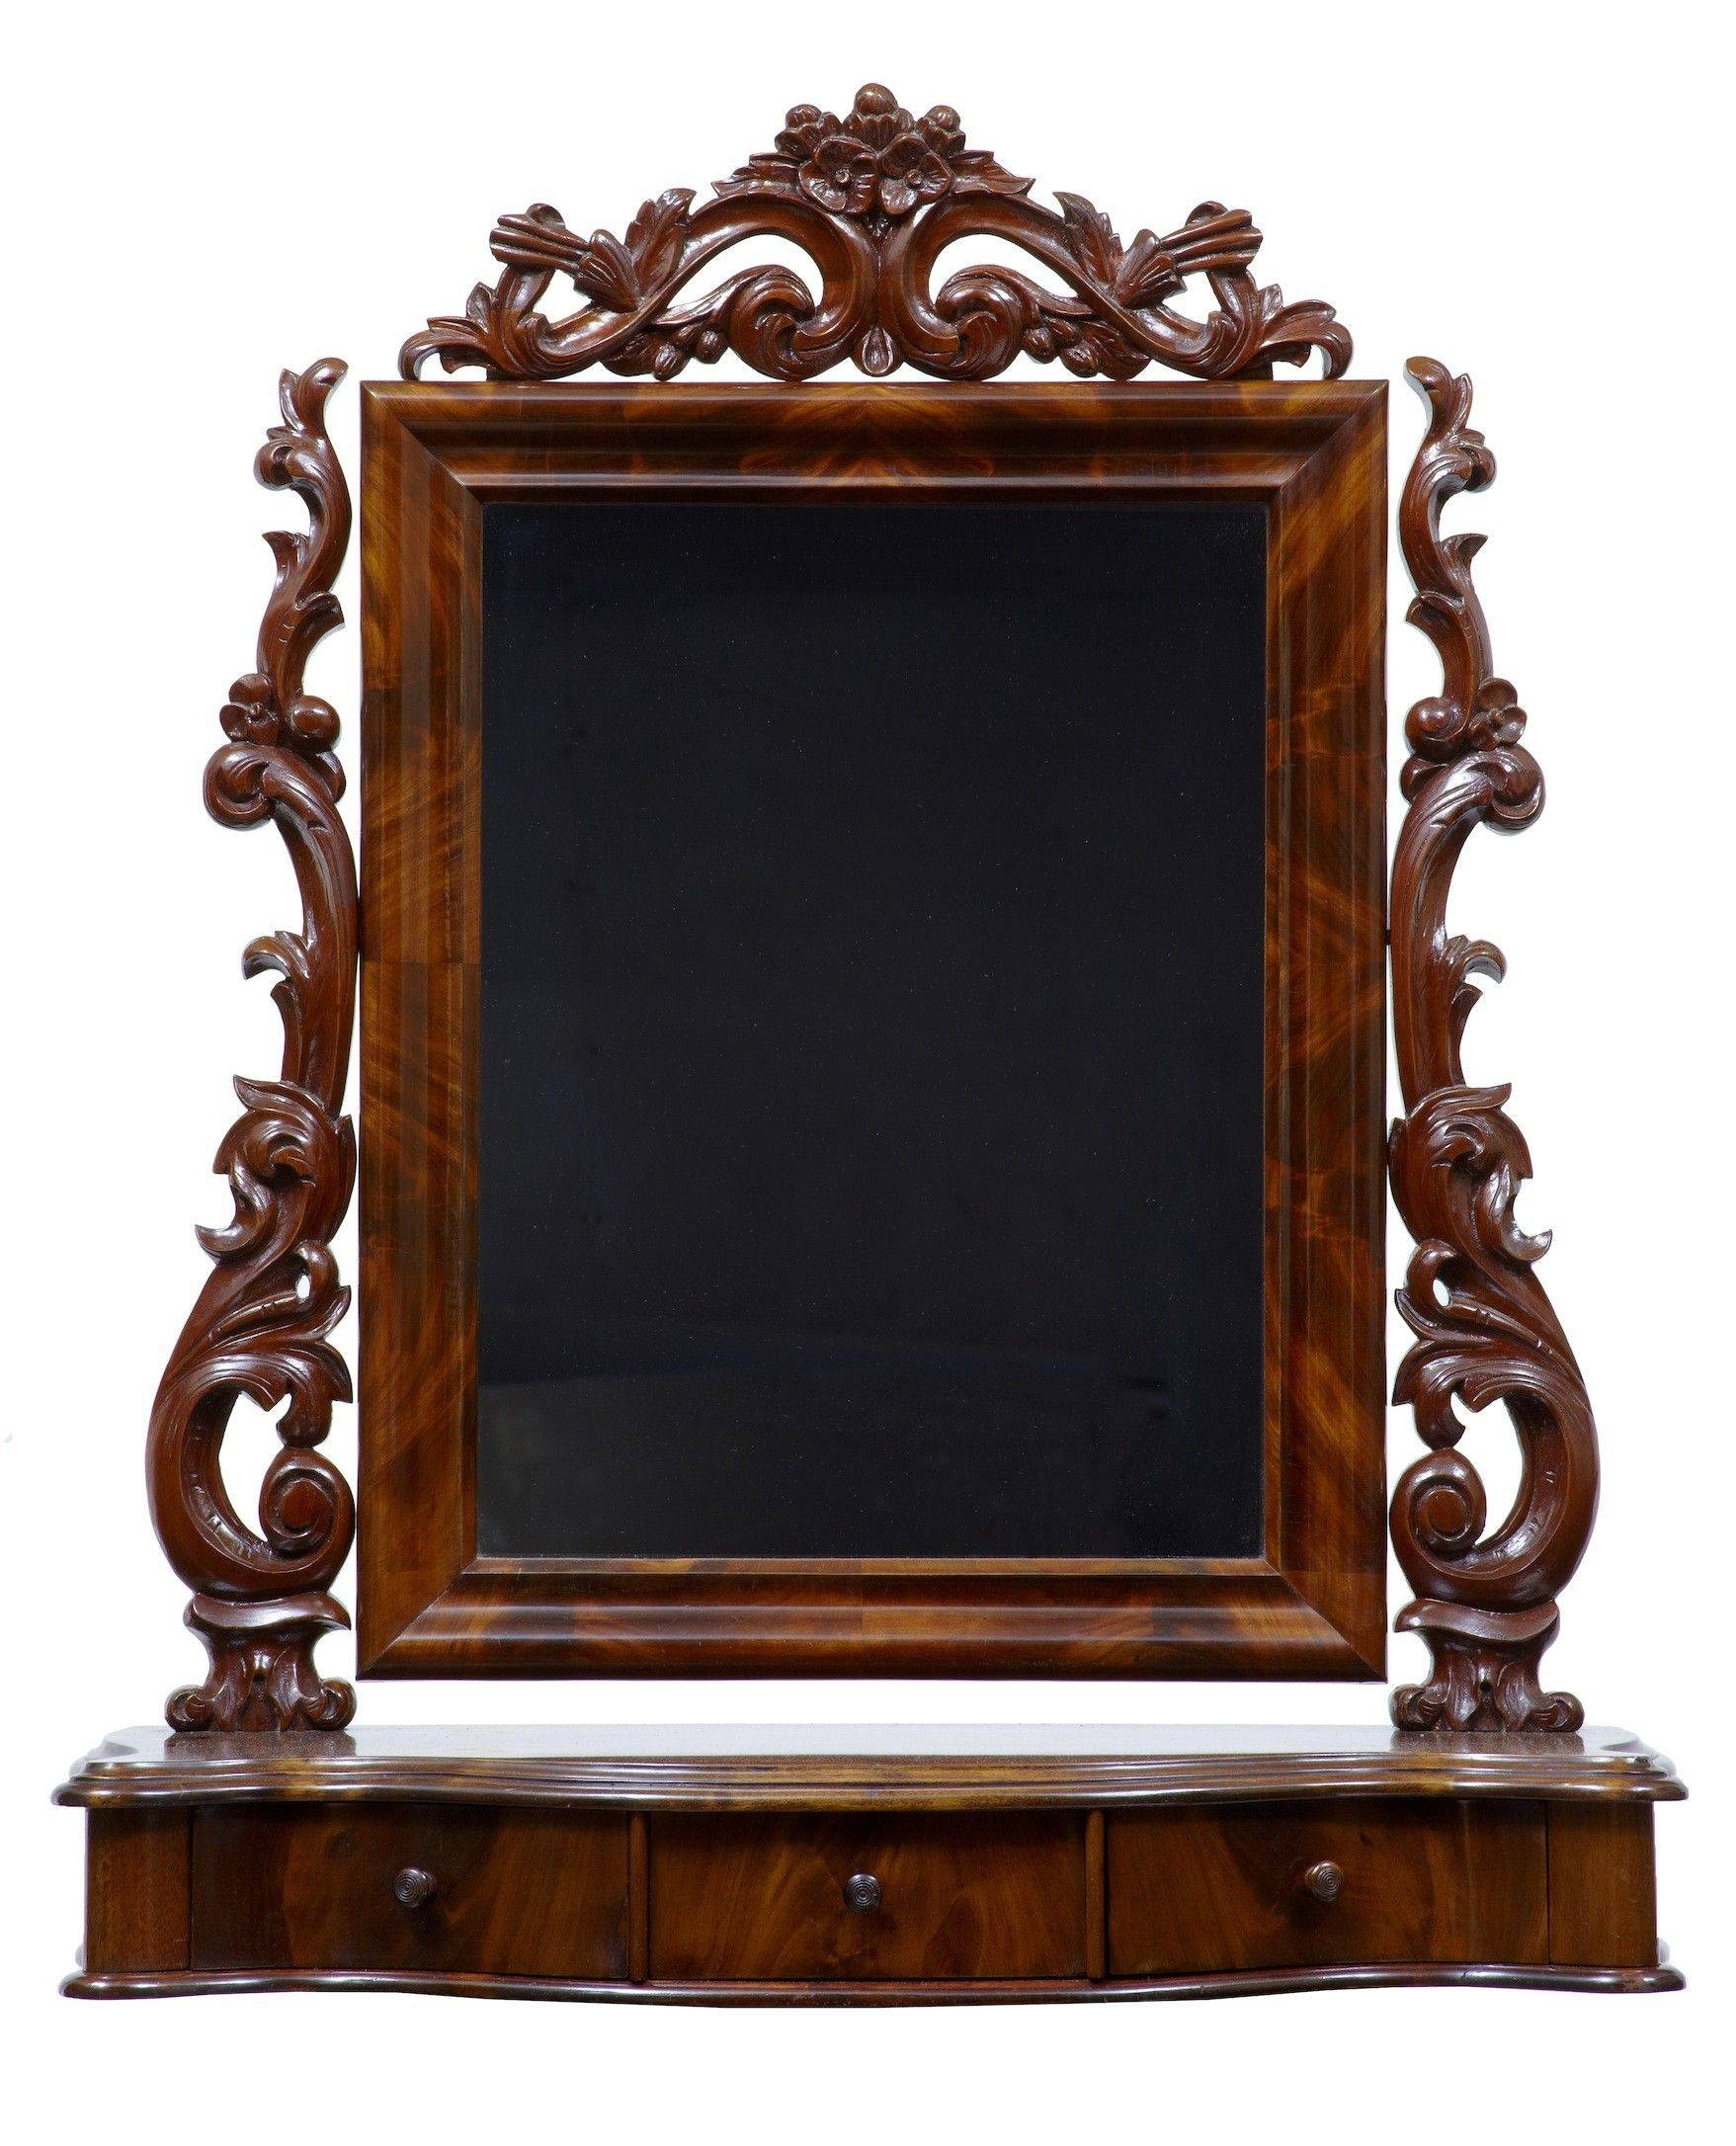 19Th Century Carved Mahogany Freestanding Dressing Table Mirror (C Inside Standing Table Mirrors (View 1 of 15)